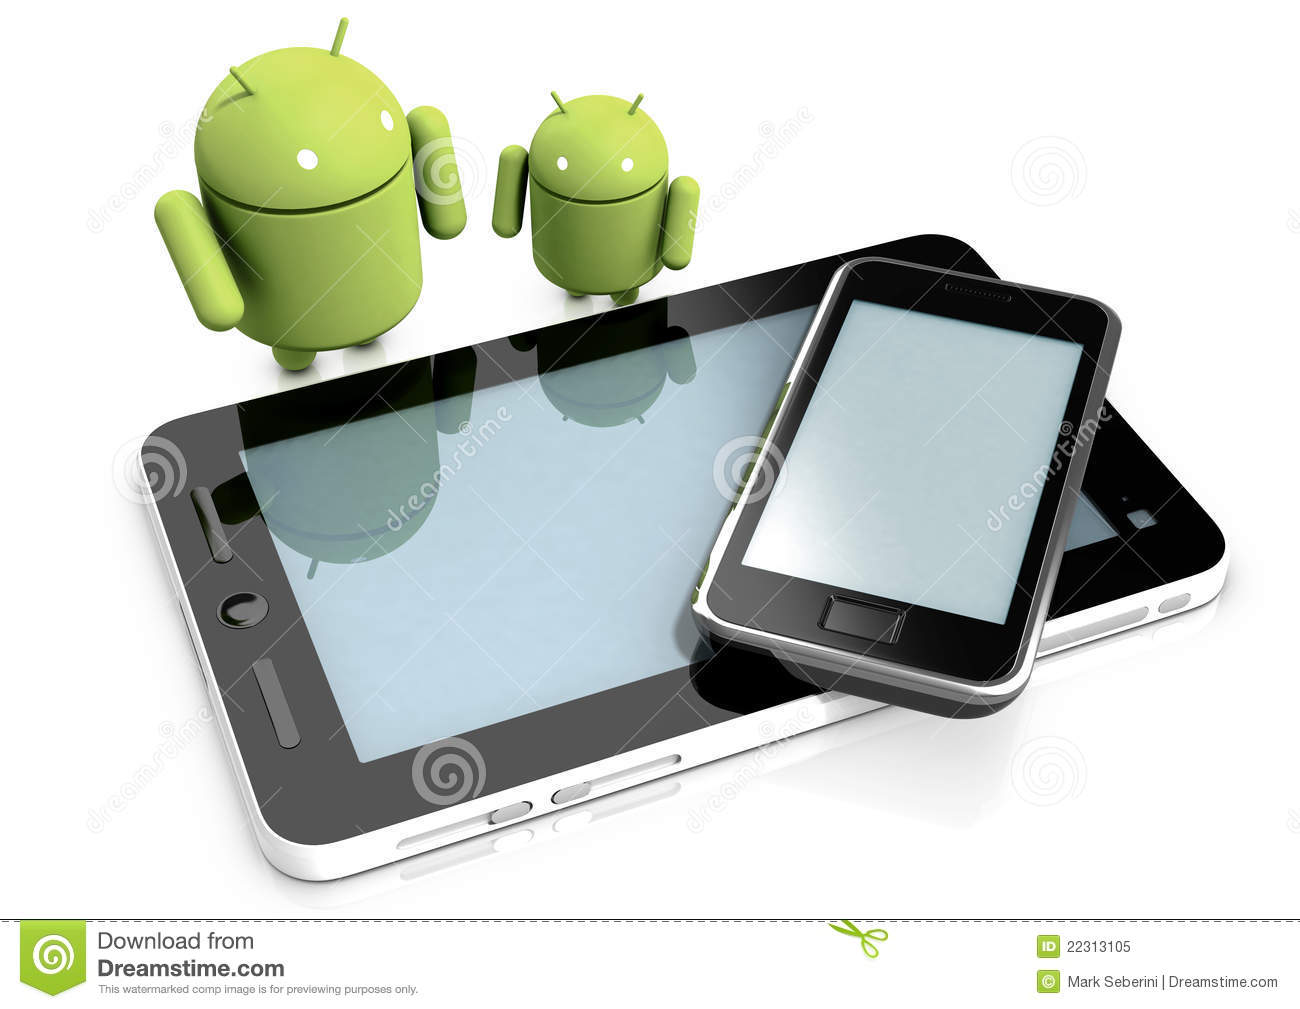 Android characters and devices